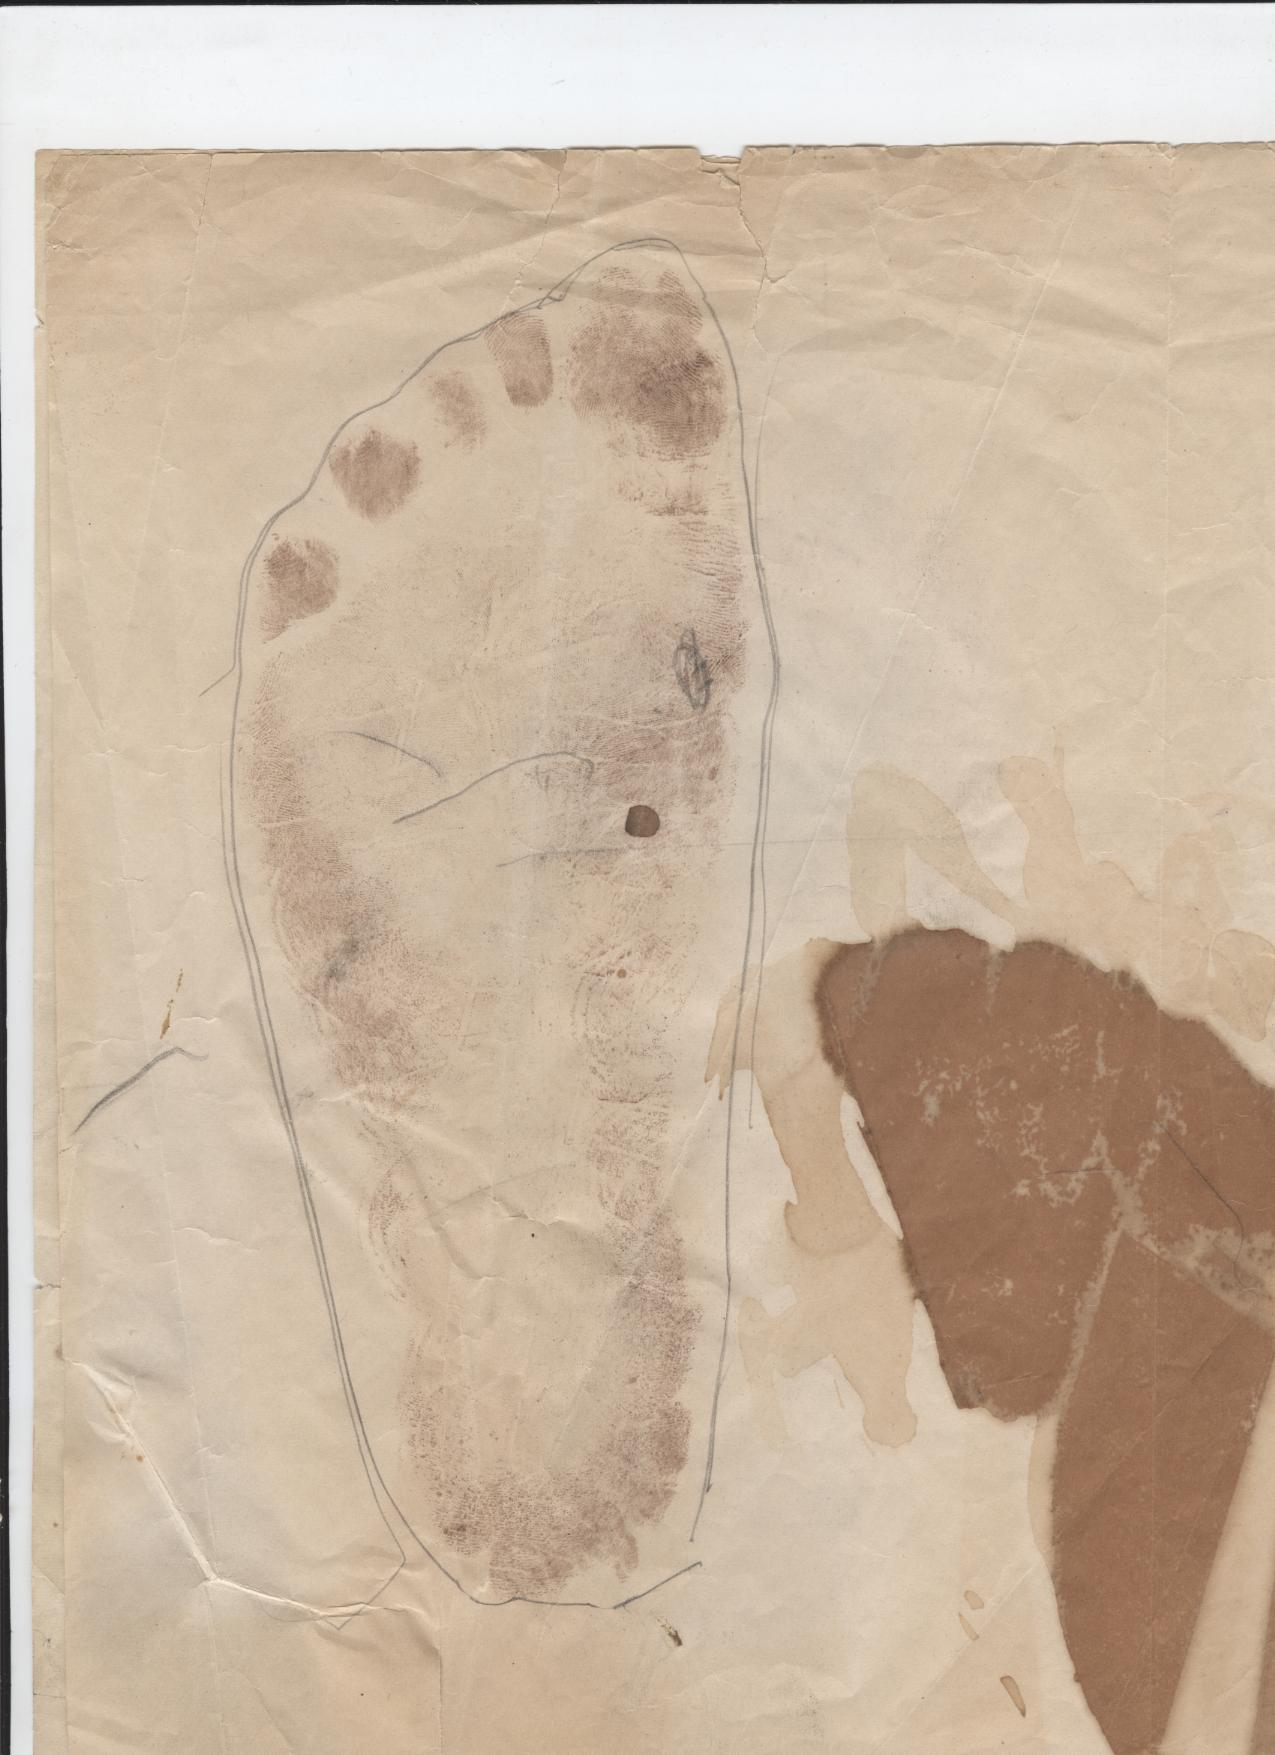 Mae West Foot Print for Custom Shoe. c. 1945. Gift of Kevin Thomas in Memory of Dolly Dempsey. FIDM Museum Collection. Copyright FIDM Museum.